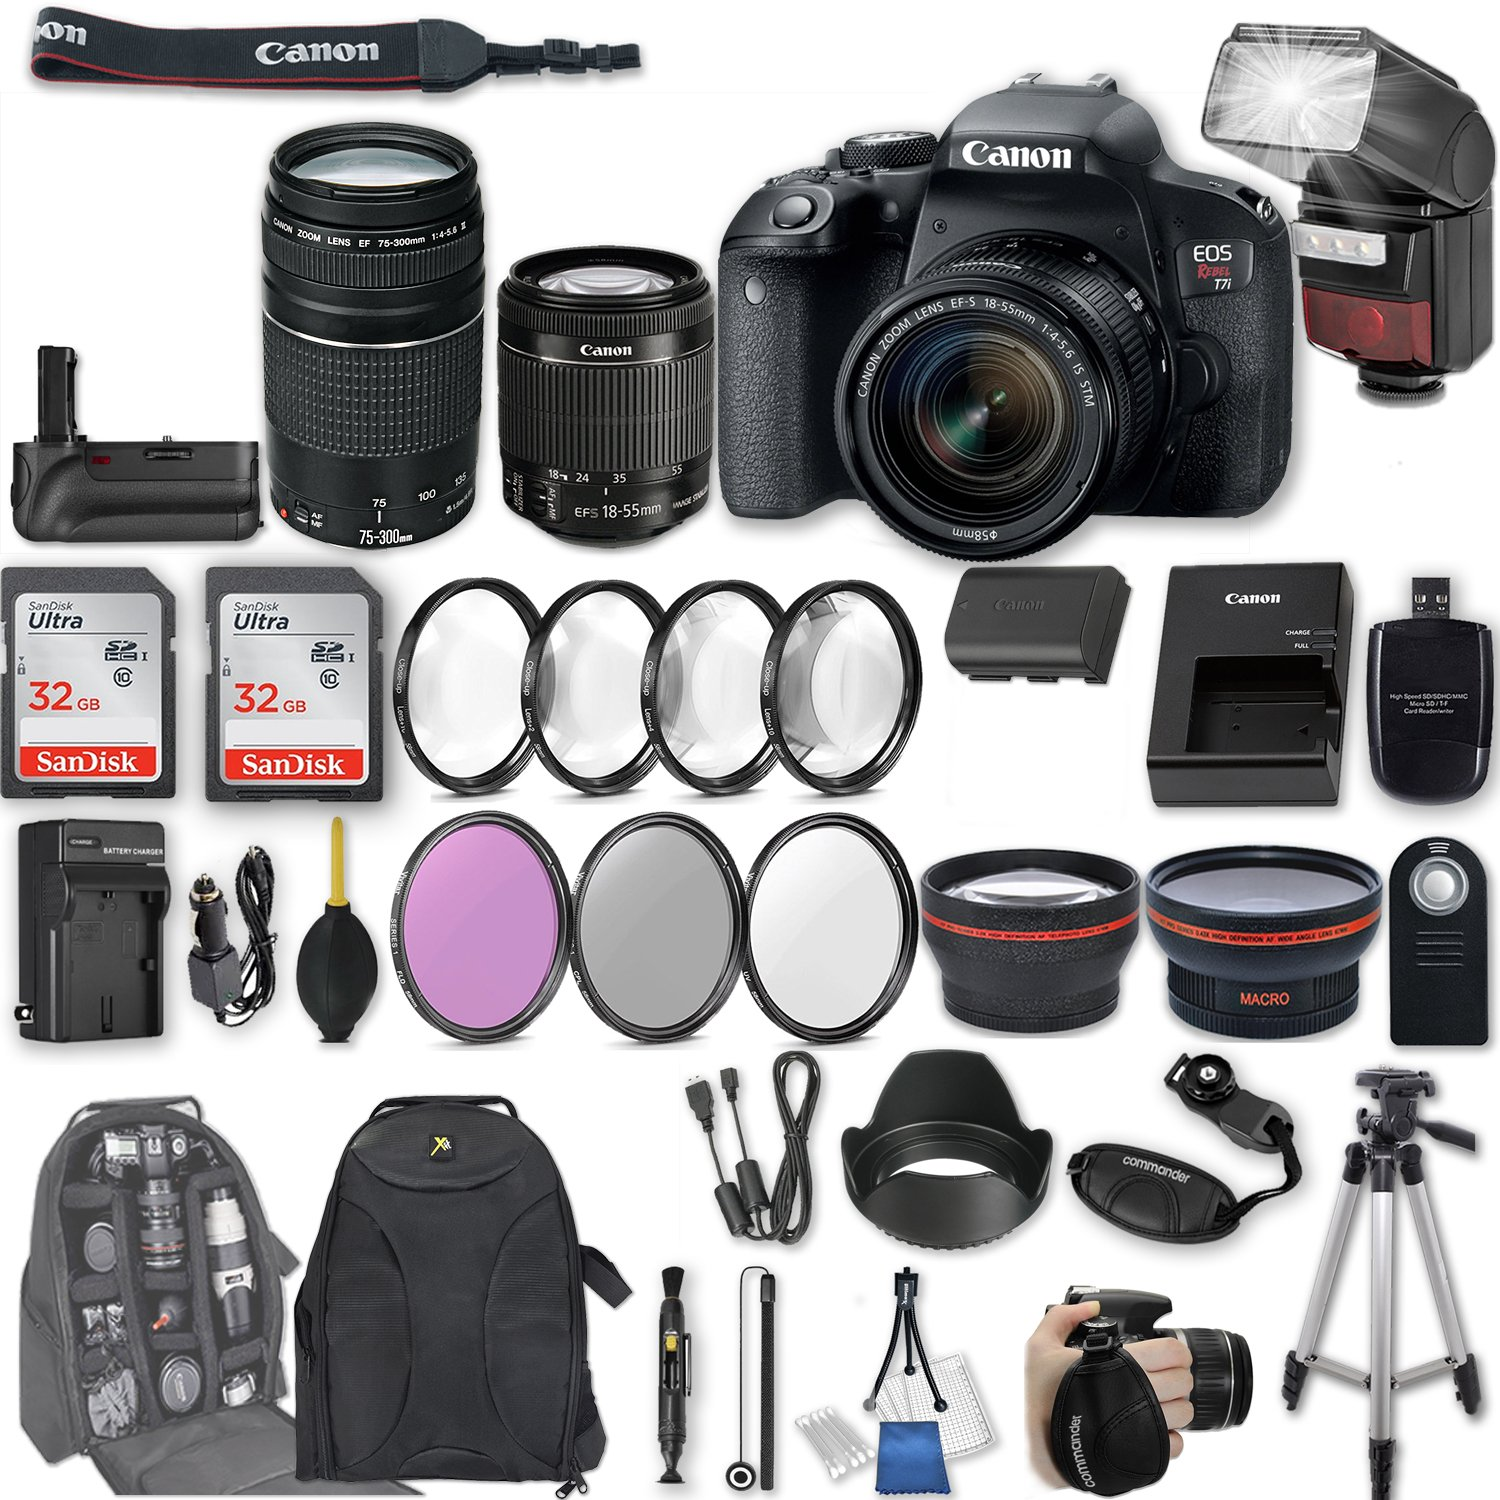 Canon EOS Rebel T7i DSLR Camera with EF-S 18-55mm f/4-5.6 IS STM Lens + EF 75-300mm f/4-5.6 III + 2Pcs 32GB Sandisk SD Memory + Automatic Flash + Battery Grip + Filter & Macro Kits + Backpack + More by Canon